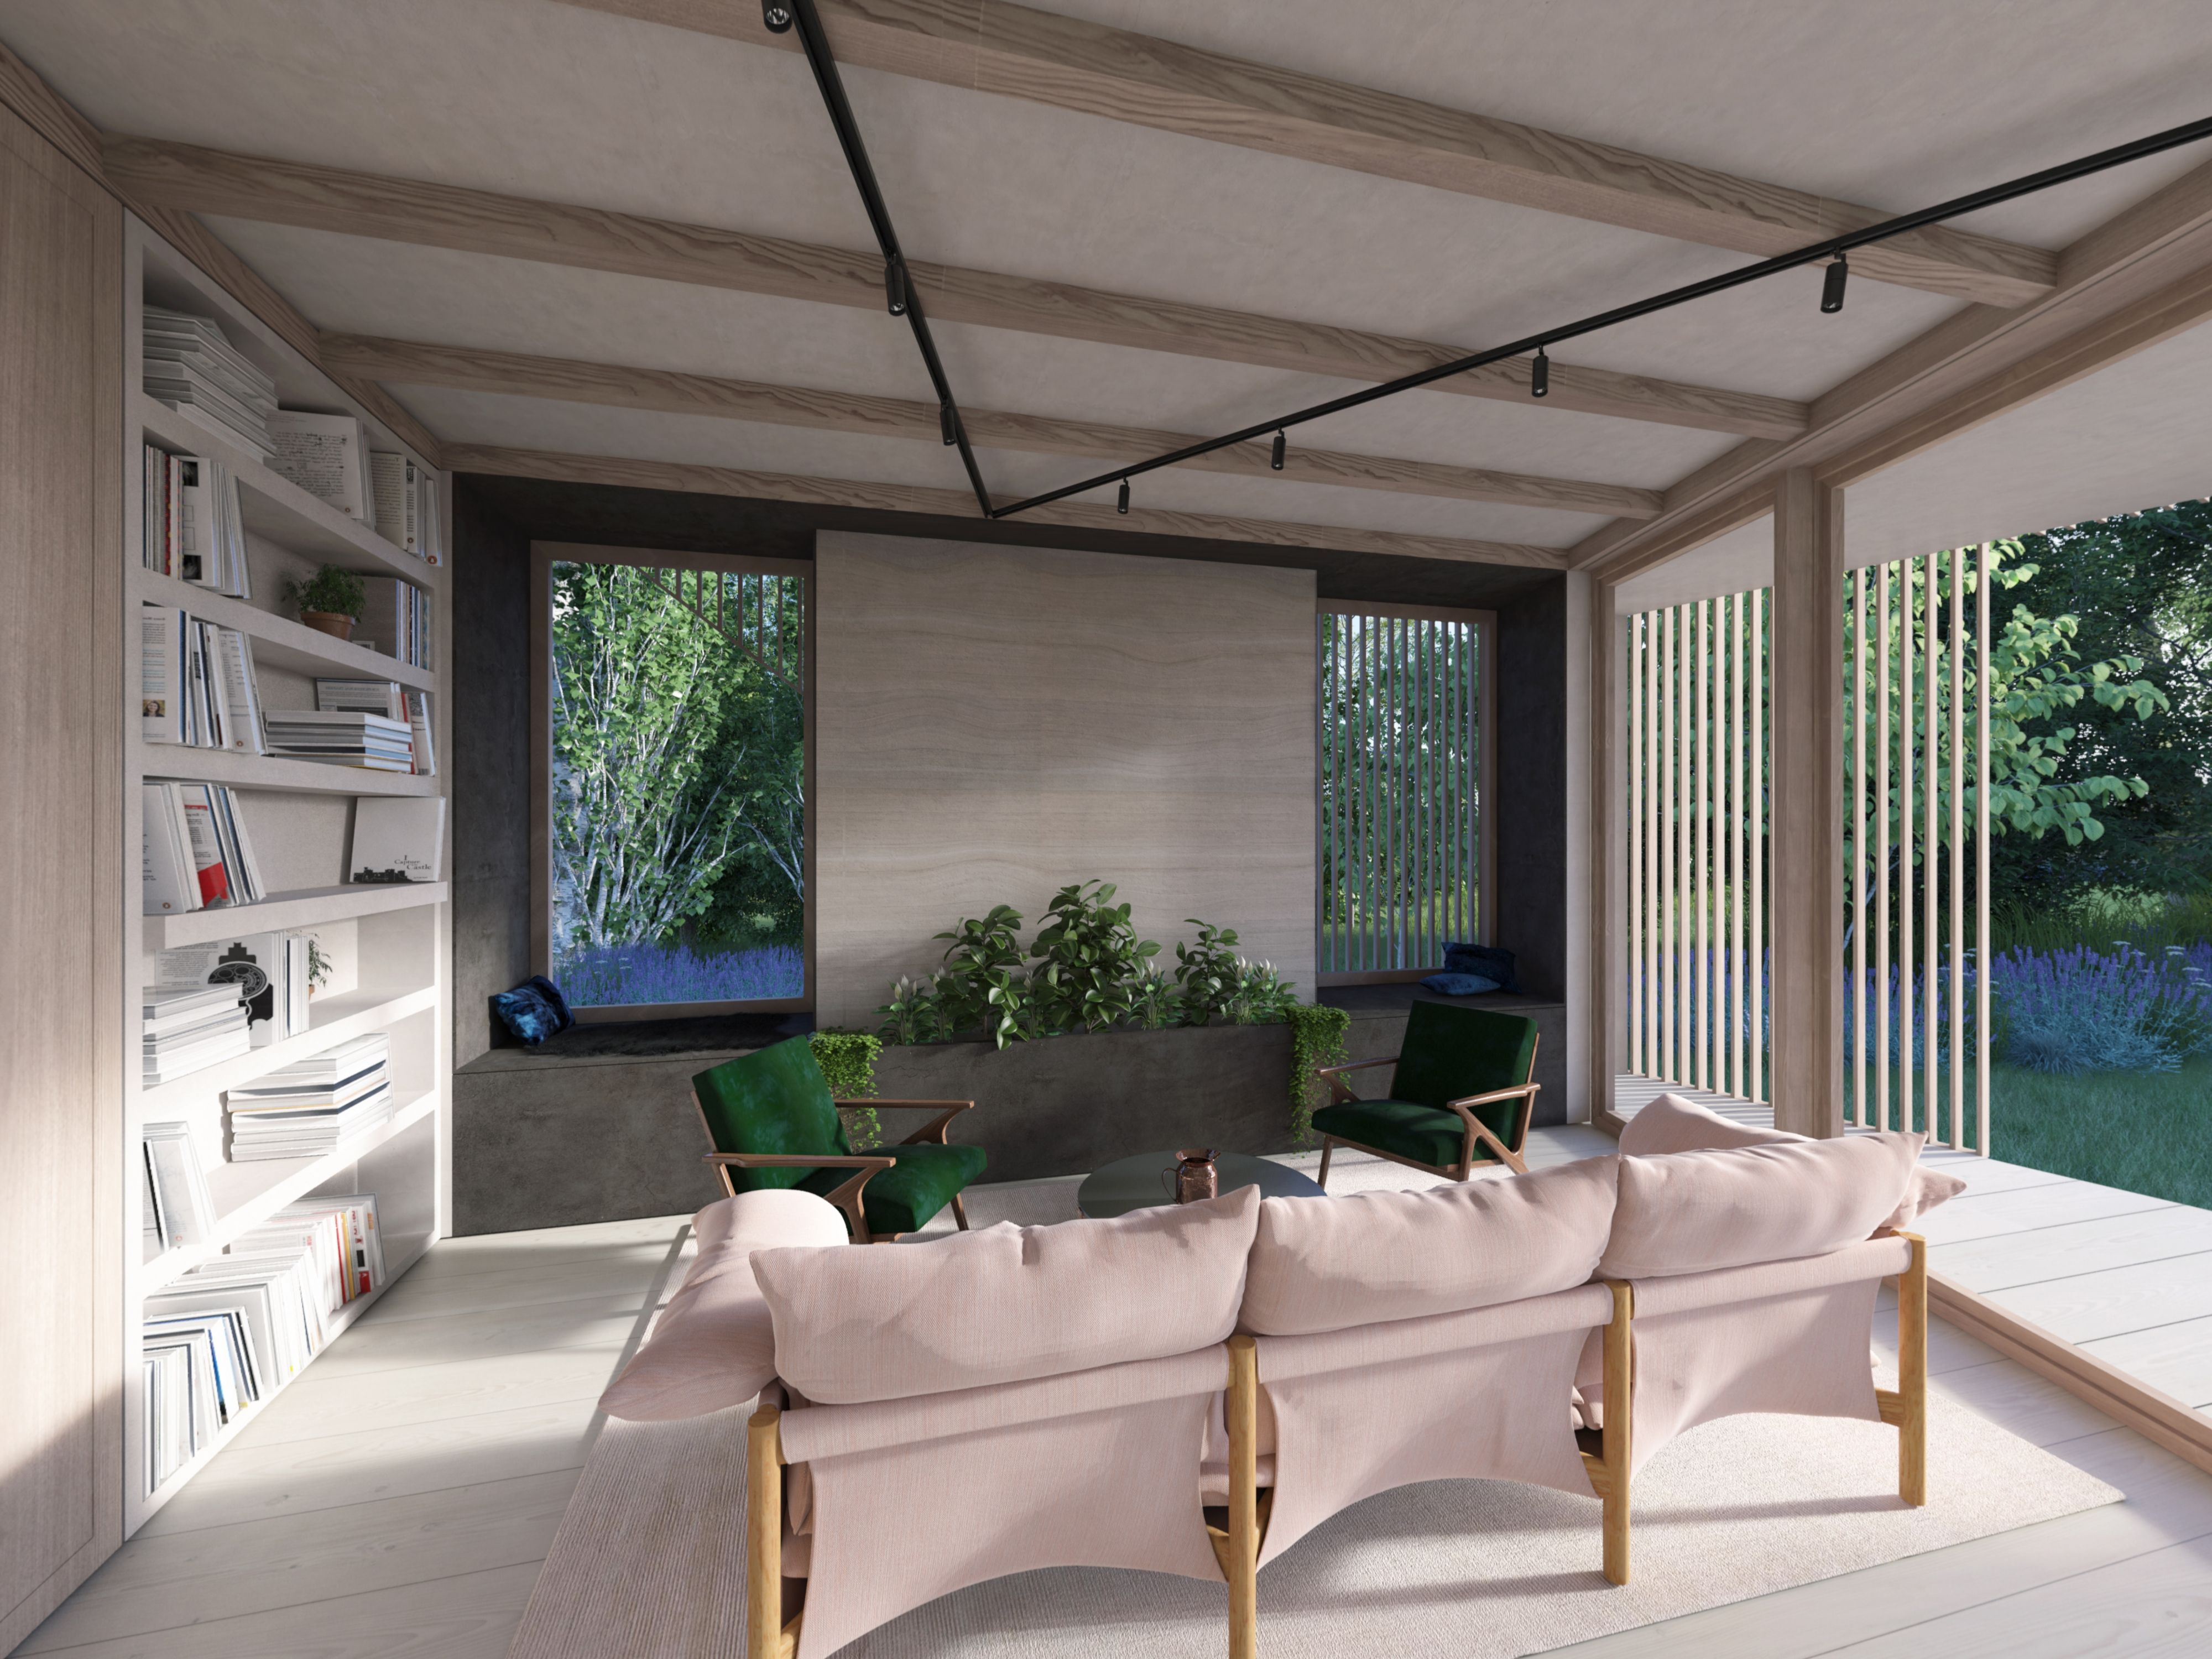 Ekkist ori house blueprint flexible open plan living area which can ekkist ori house blueprint flexible open plan living area which can be enclosed with sliding timber partitions when required full height shelving and a malvernweather Gallery